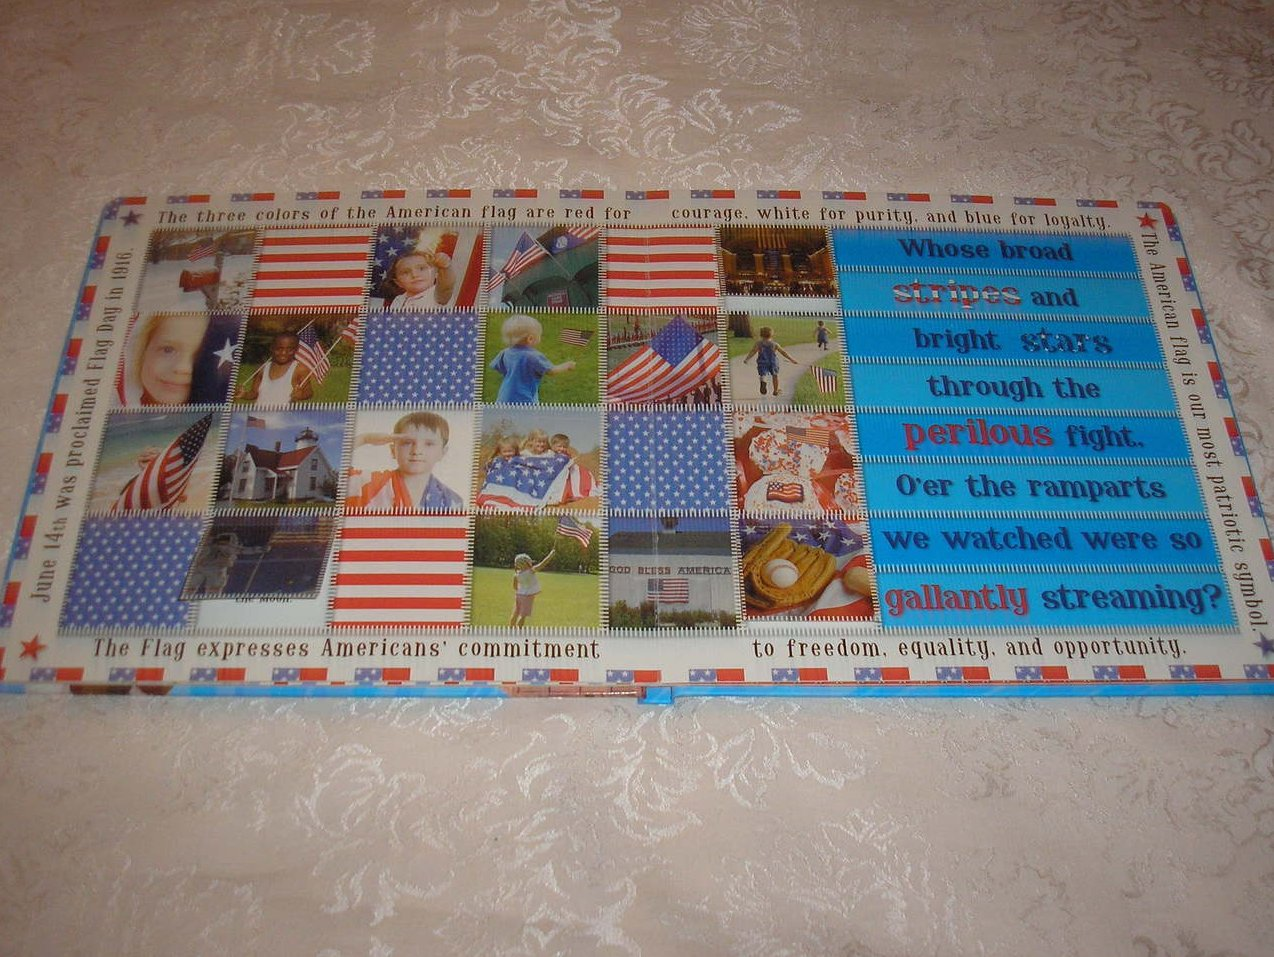 Image 3 of Oh Say! Can You See Francis Scott Key brand new large board book, CD, USA Poster